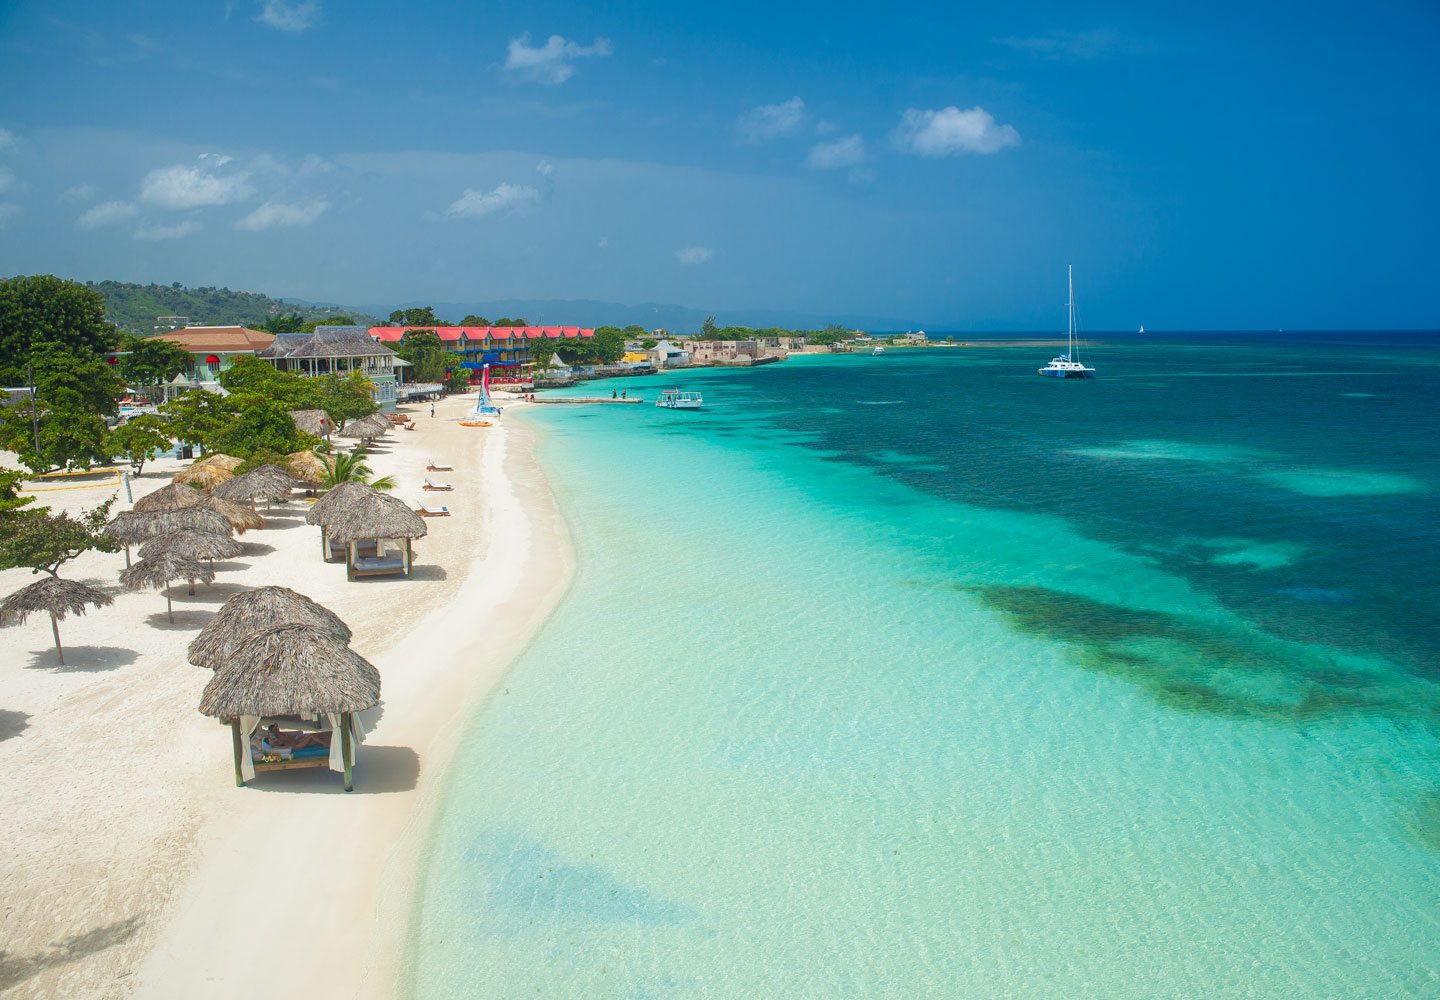 Travel Agency All-Inclusive Resort Sandals Montego Bay 002